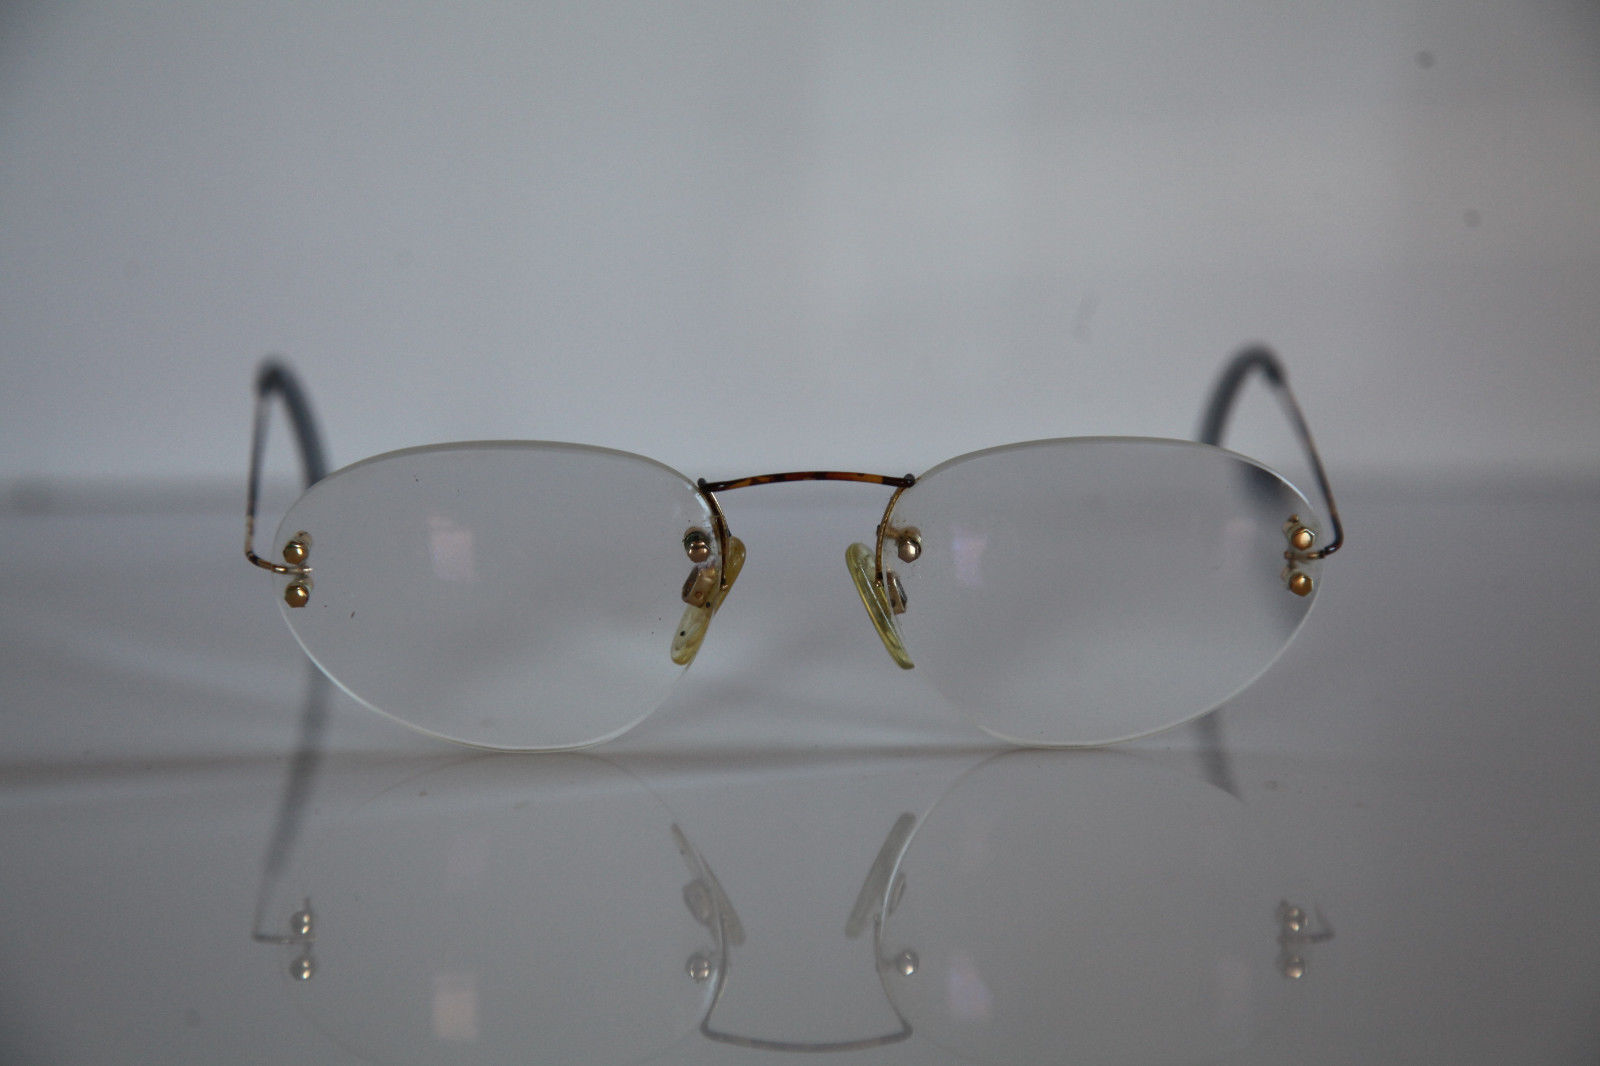 RODENSTOCK Eyewear, Gold, Brown Frame,  RX-Able Prescription lens. Germany